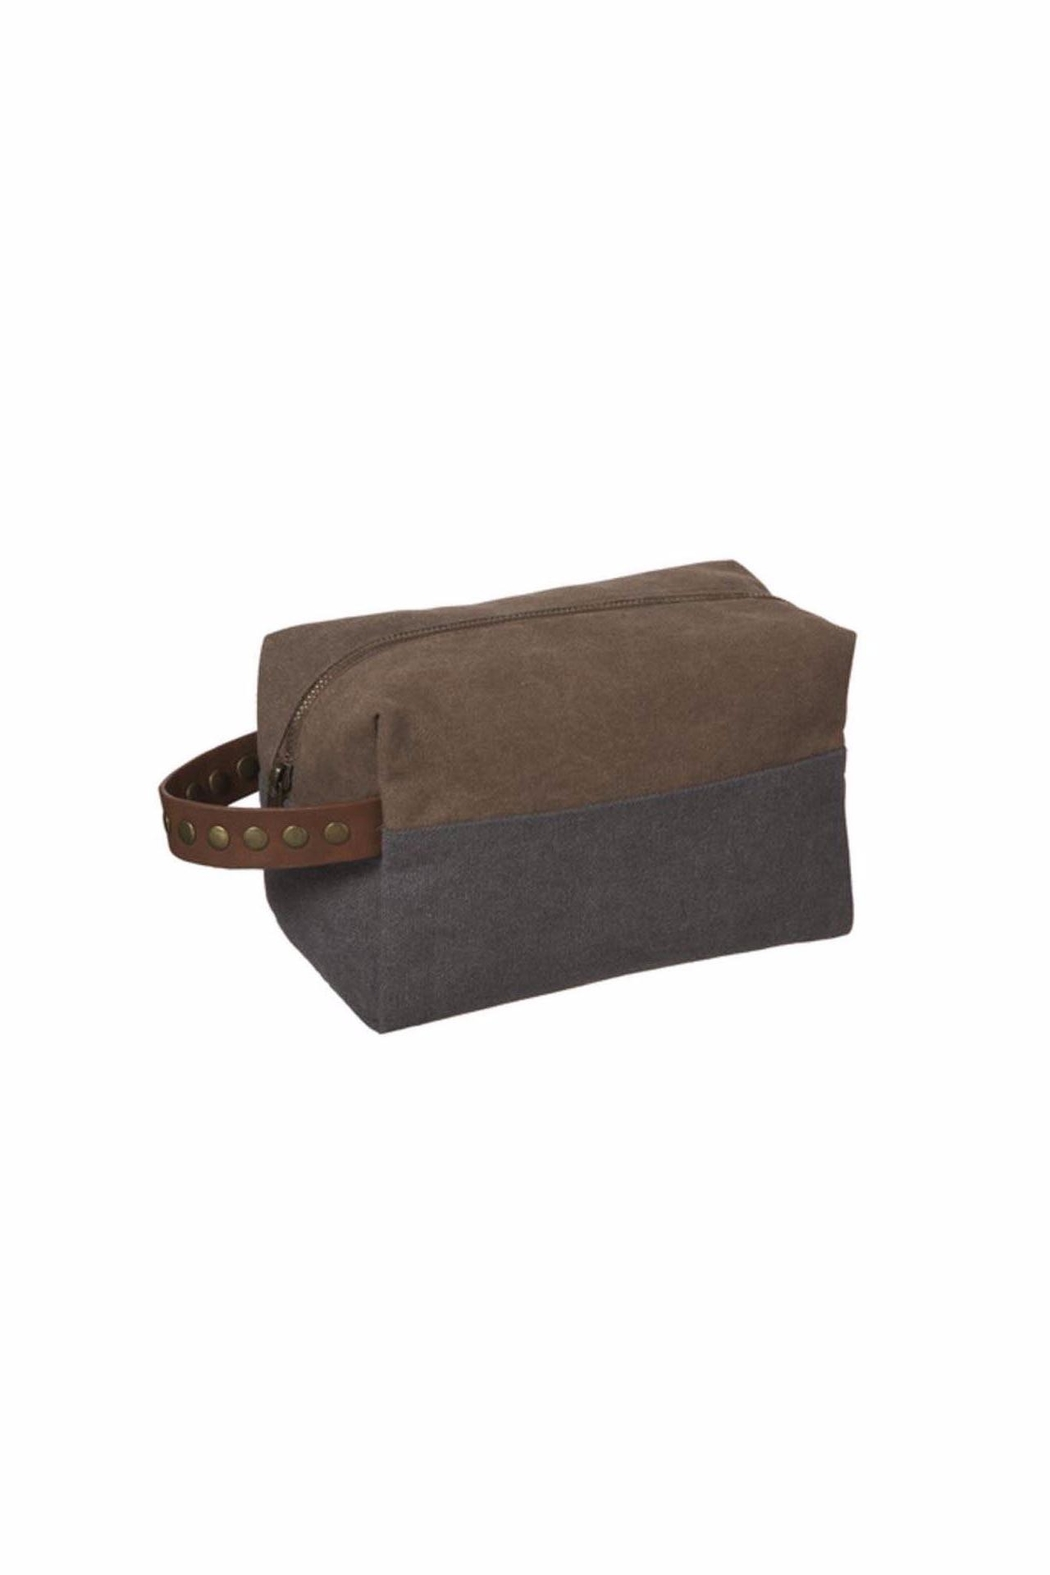 Ganz Travel Case Gray/brown - Main Image